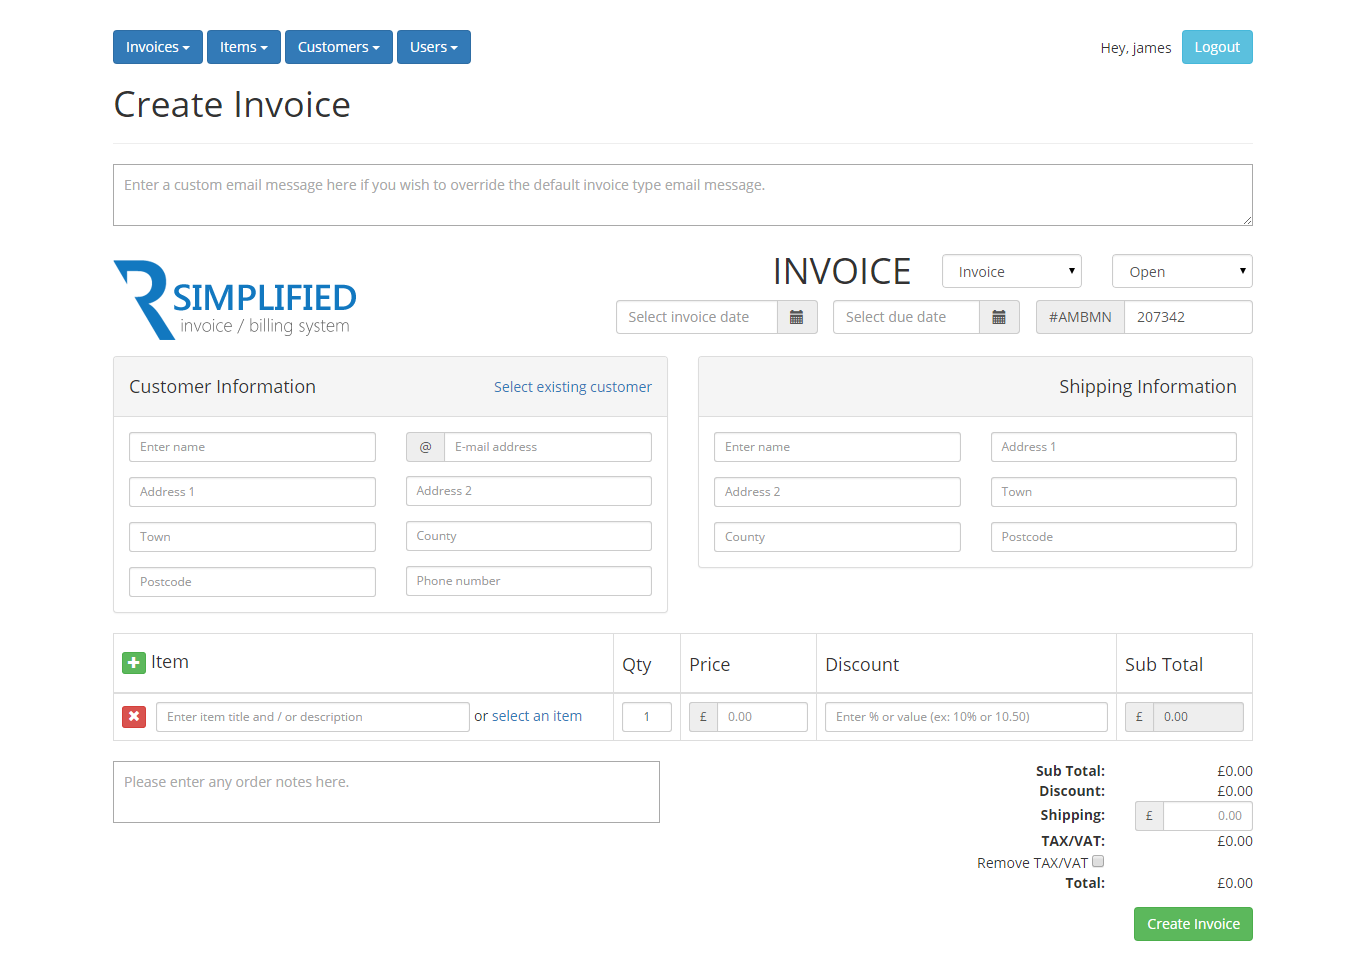 Simplified php invoice billing system by hostandname for Table design using php